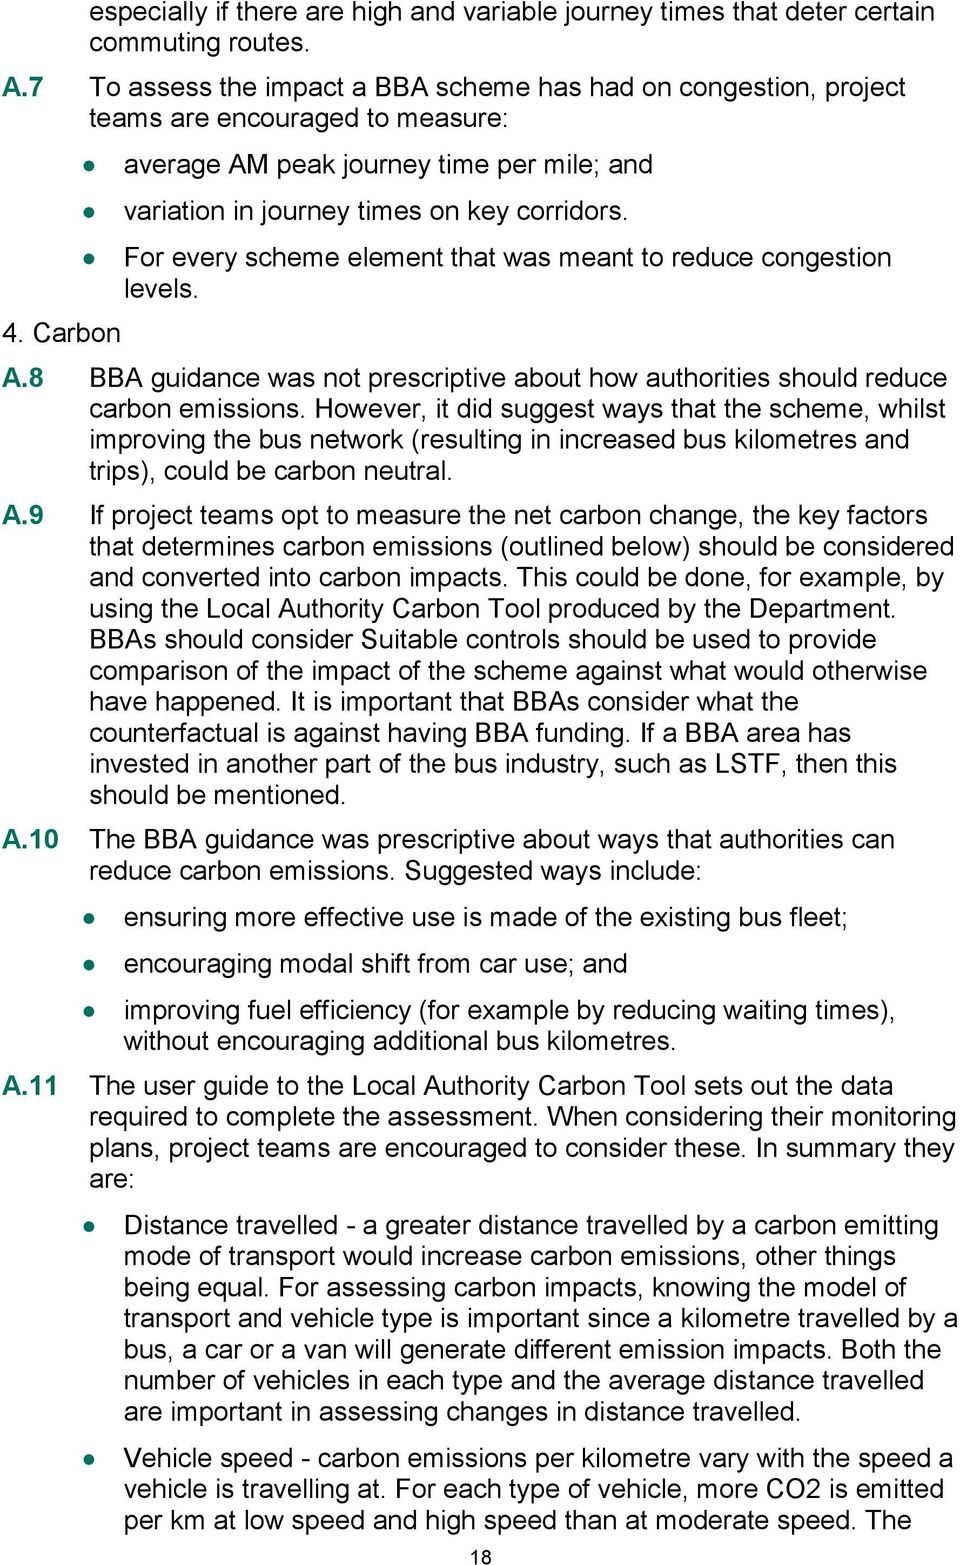 However, it did suggest ways that the scheme, whilst improving the bus network (resulting in increased bus kilometres and trips), could be carbon neutral. A.